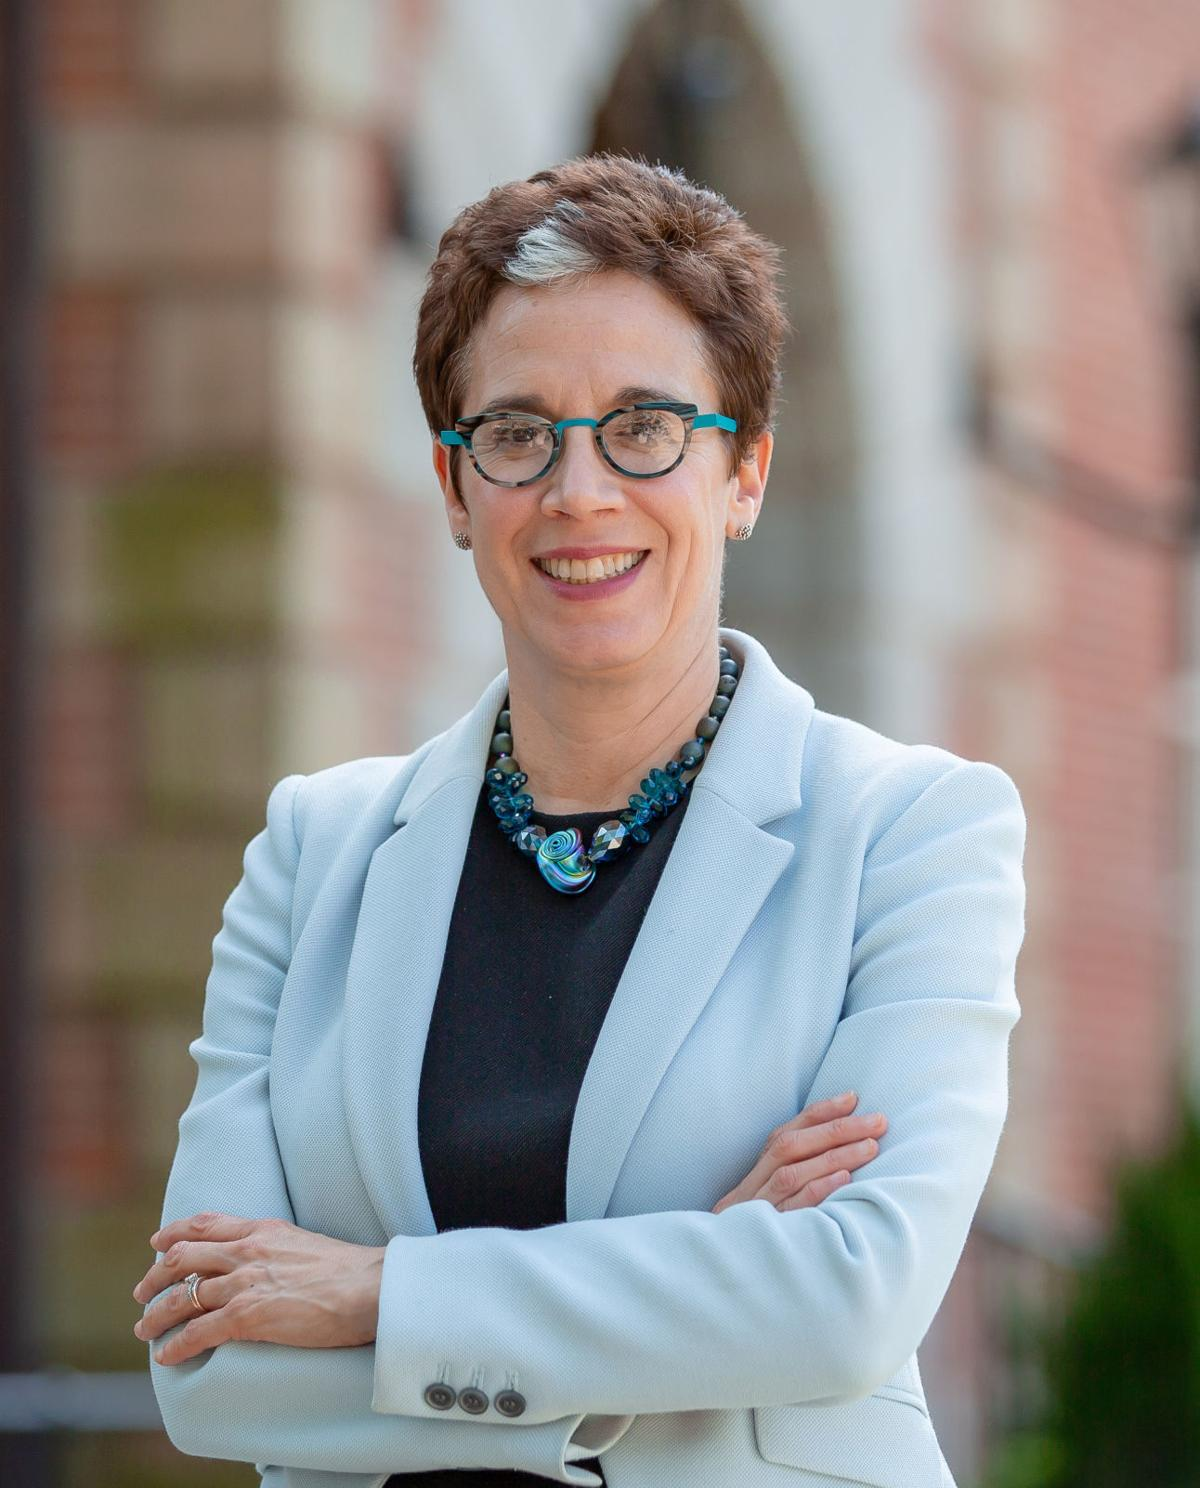 Maryanne Reed, Provost of WVU